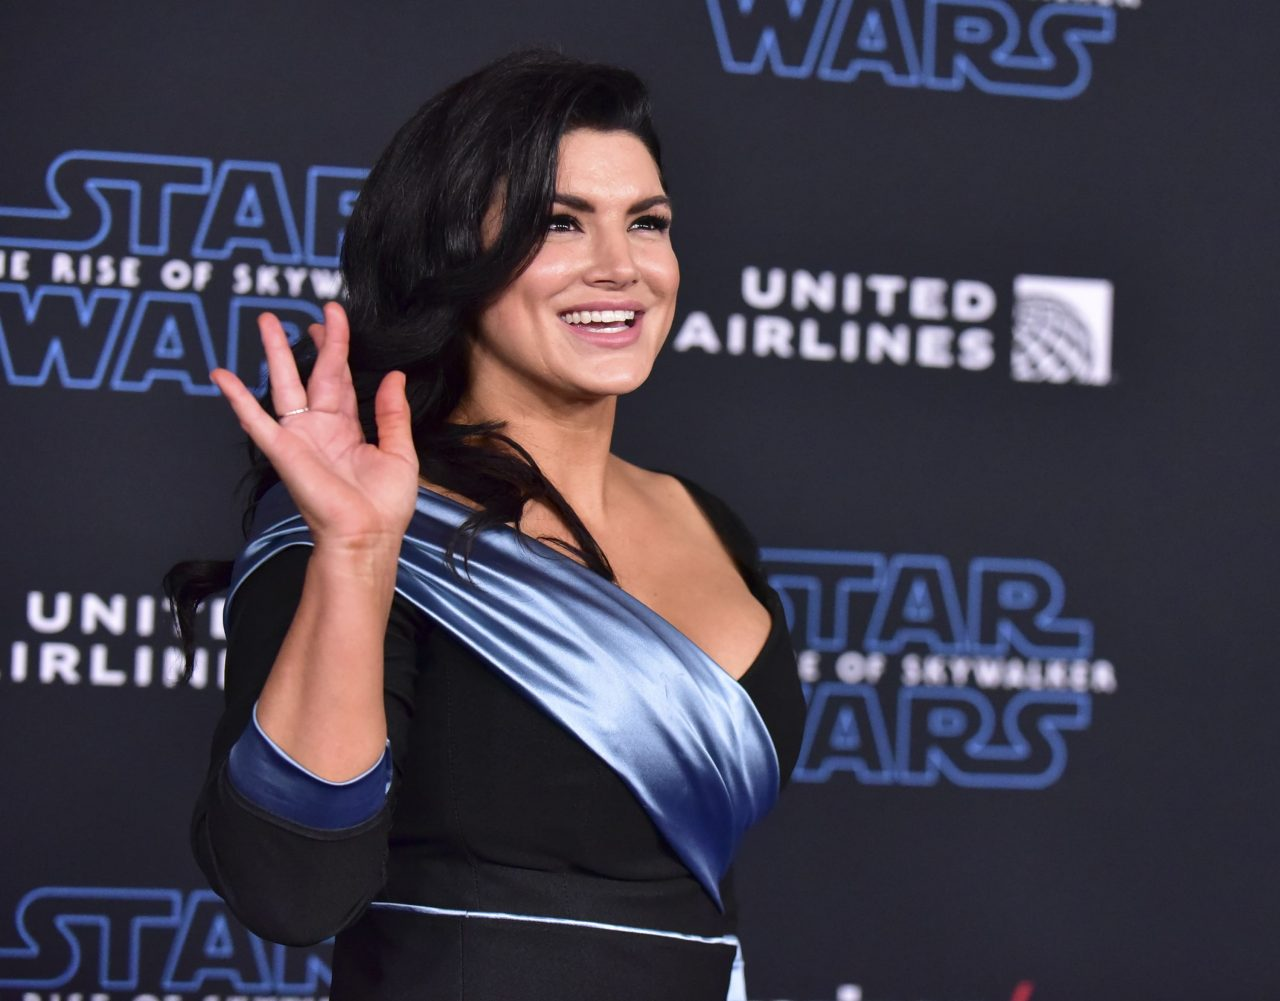 https://www.gmi-co.com/wp-content/uploads/2021/02/gina-carano-gets-new-gig-with-ben-shapiros-the-daily-wire-after-disney-firing-1280x1001.jpg